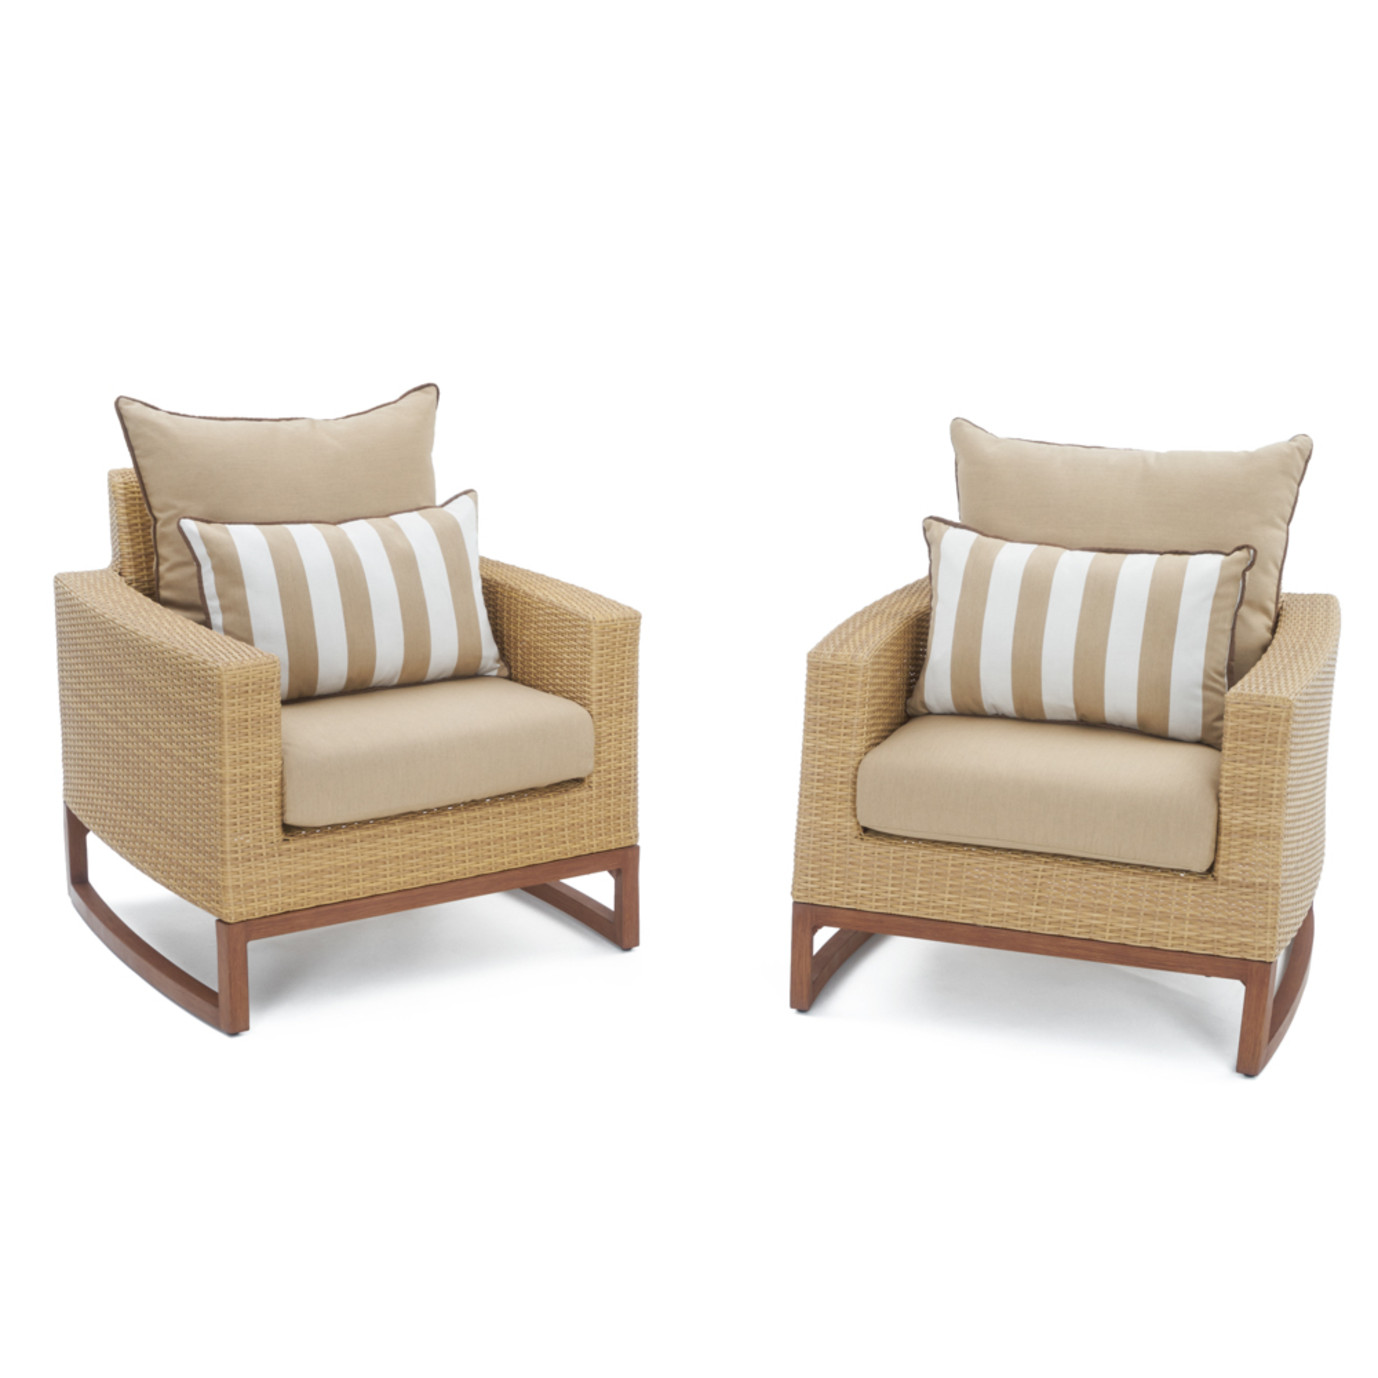 Mili™ 5 Piece Club Chair & Ottoman Set - Maxim Beige